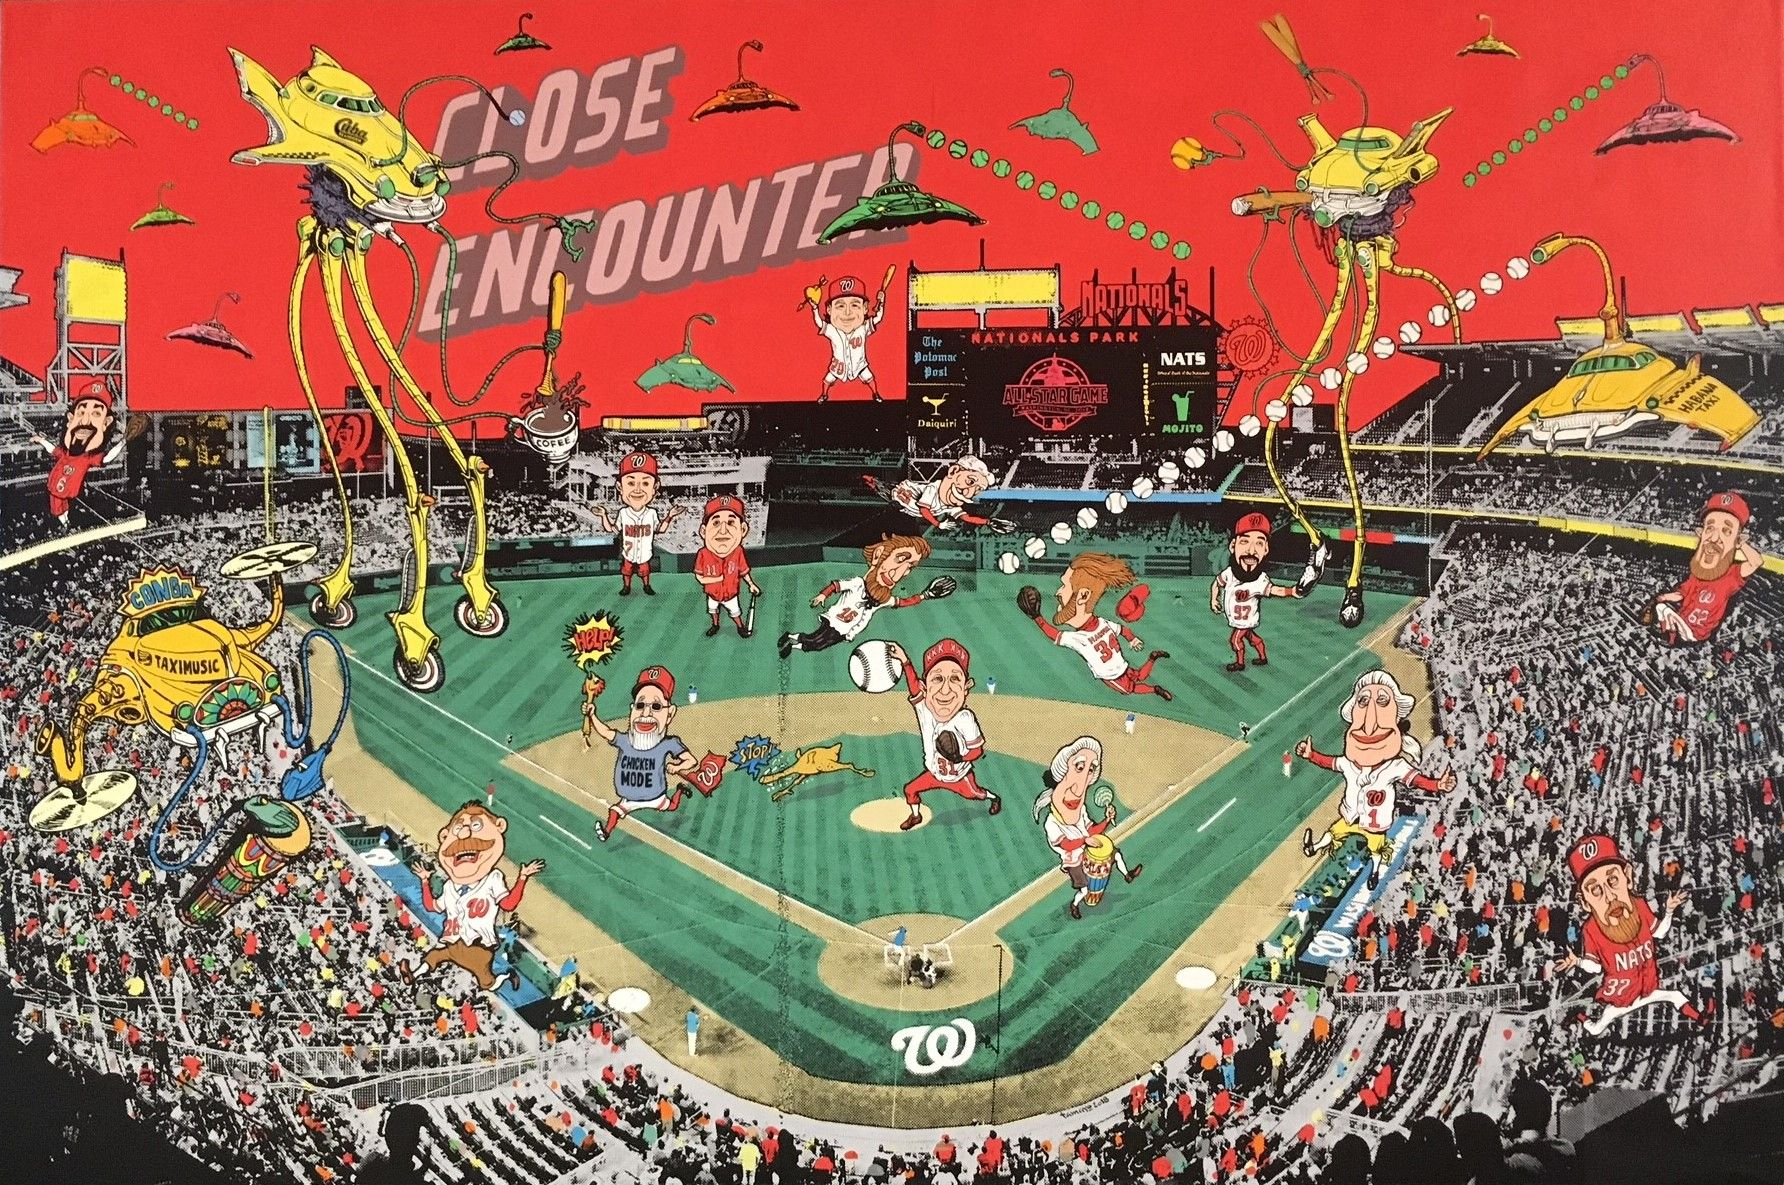 """The artist depicts a celebratory, """"War of the Worlds""""-like invasion of Nationals Park by Havana taxis. (WTOP/Noah Frank)"""